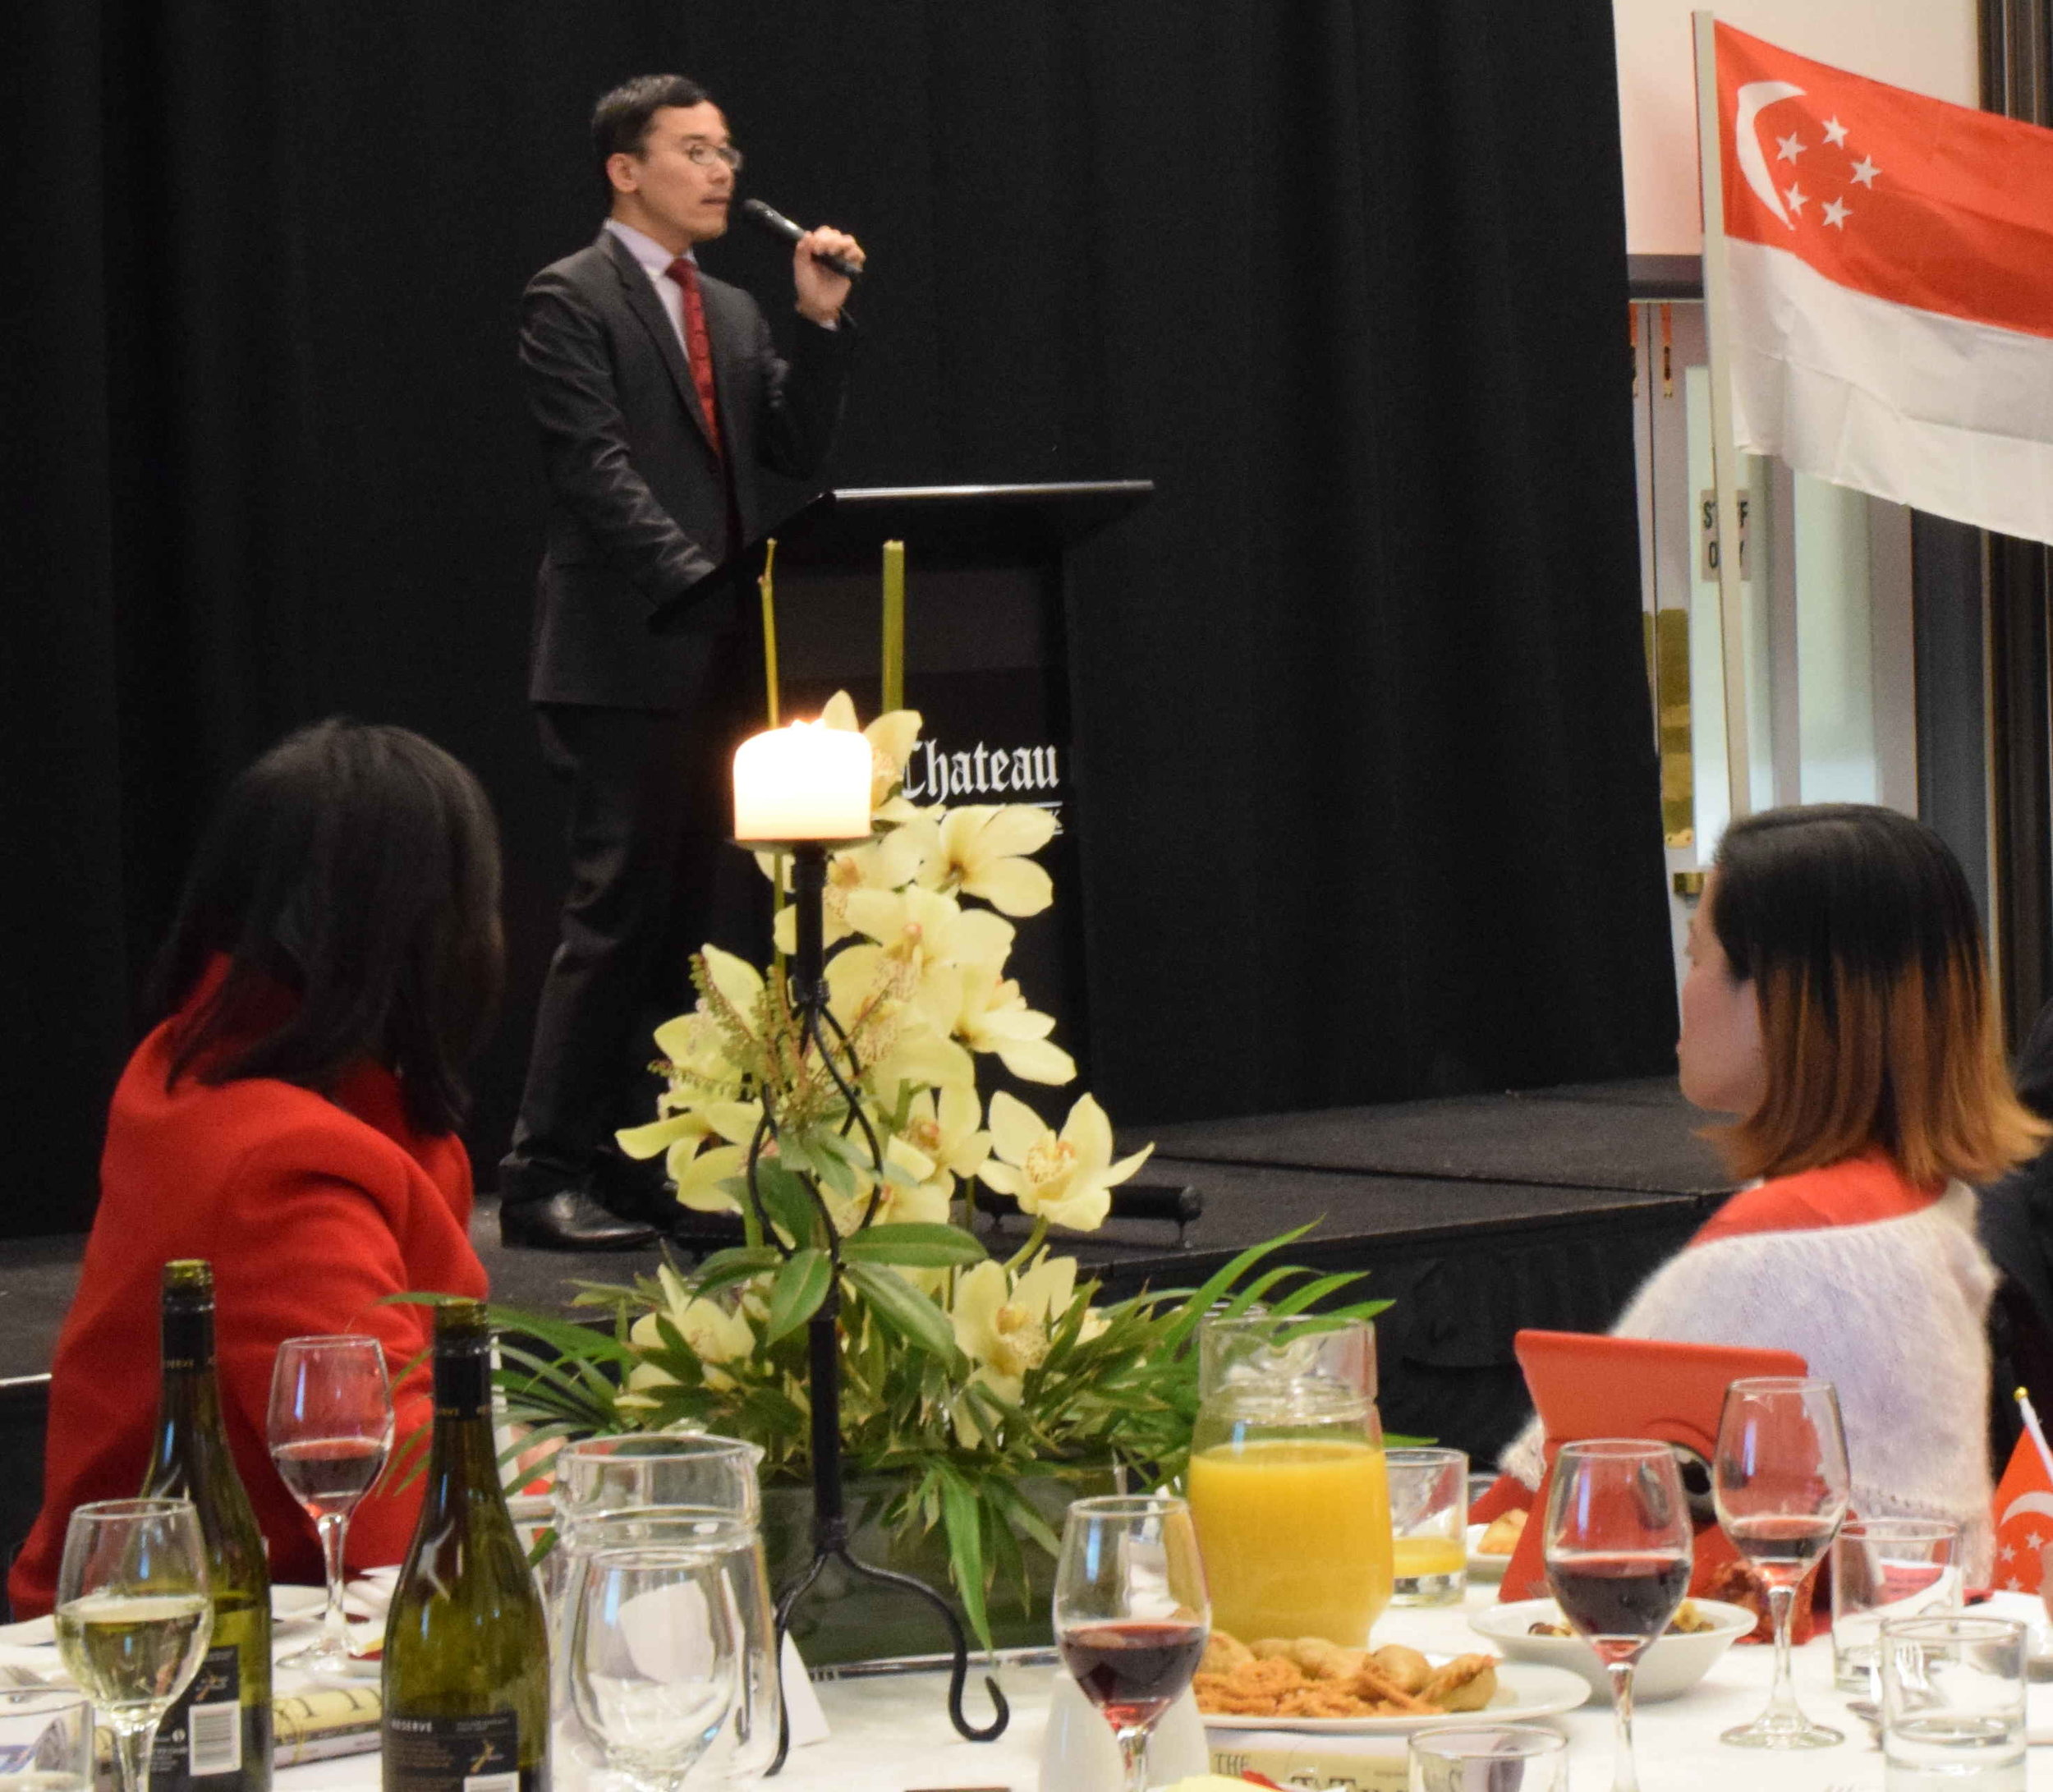 Ang Seow Wei, Deputy High Commissioner at High Commission of Singapore in New Zealand, addressing the gathering